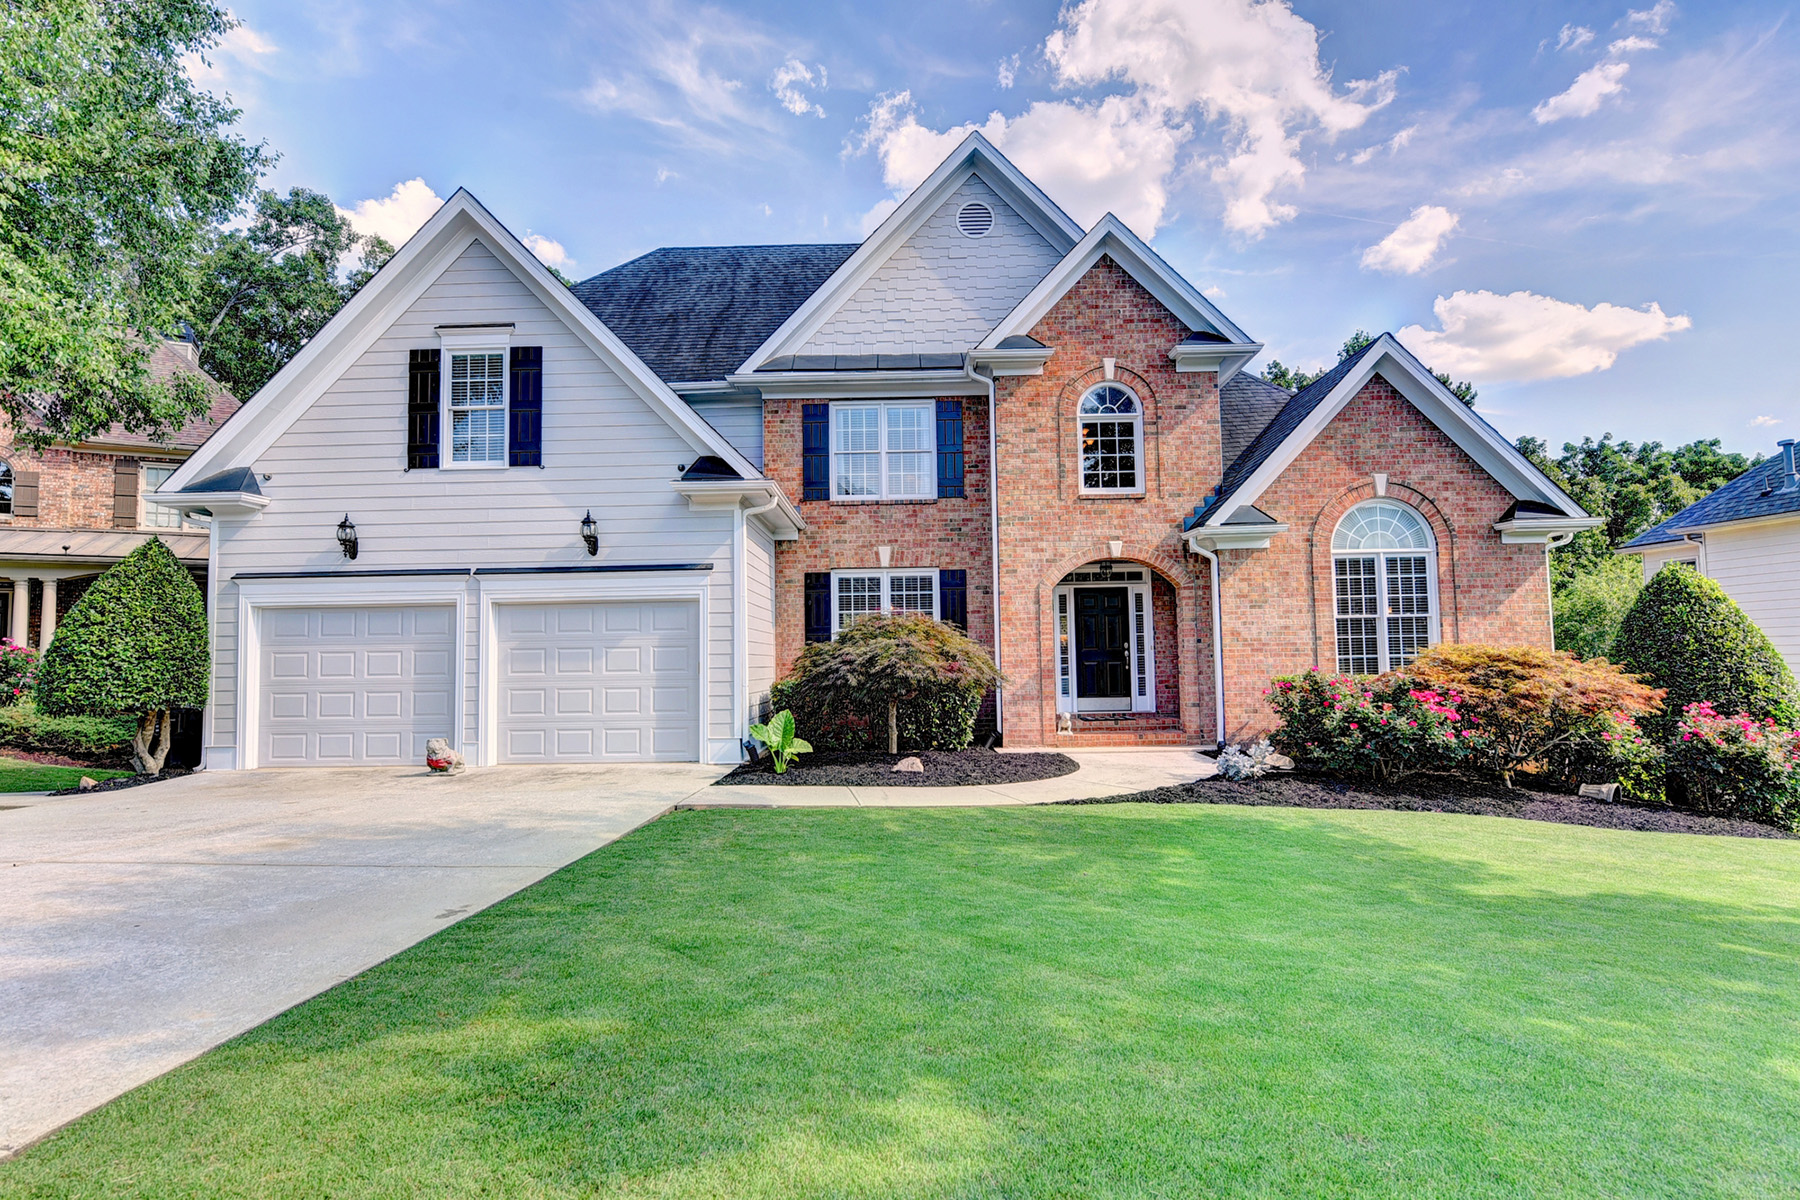 Single Family Homes のために 売買 アット An Entertainer's Dream In Hamilton Mill 3910 Lantern Hill Dr, Dacula, ジョージア 30019 アメリカ